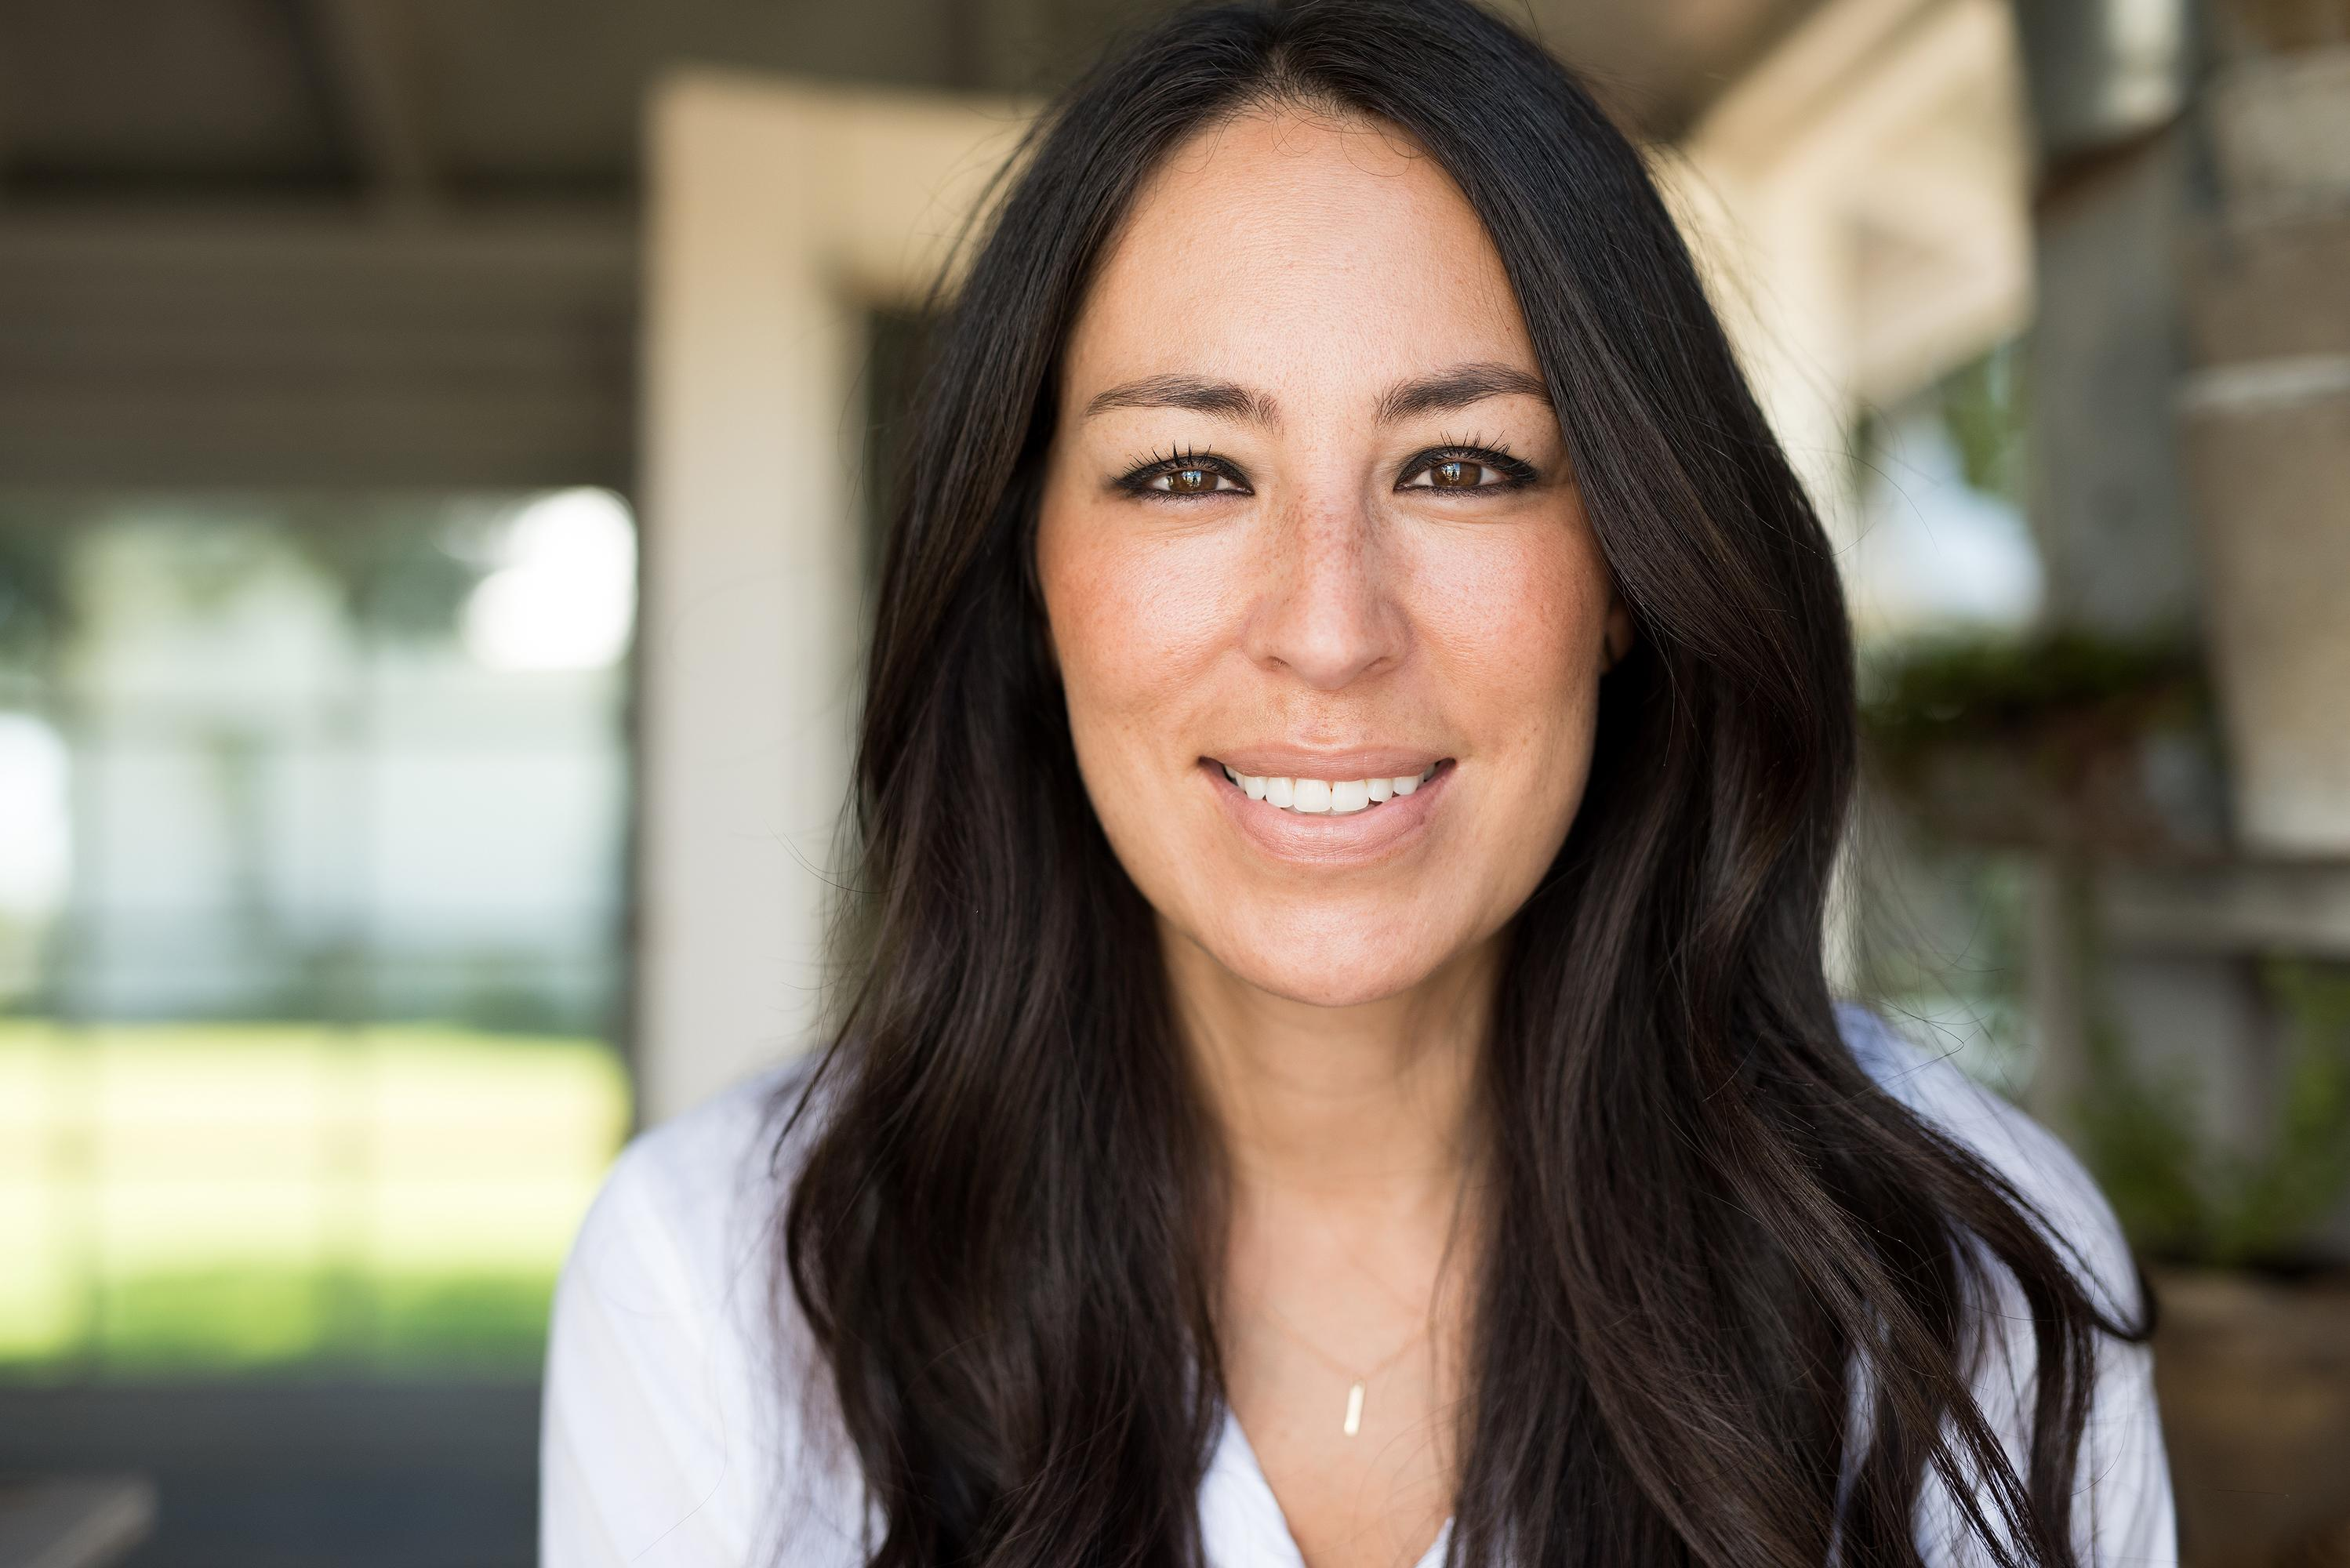 How Joanna Gaines Gave Up Being 39 A Textbook Control Freak